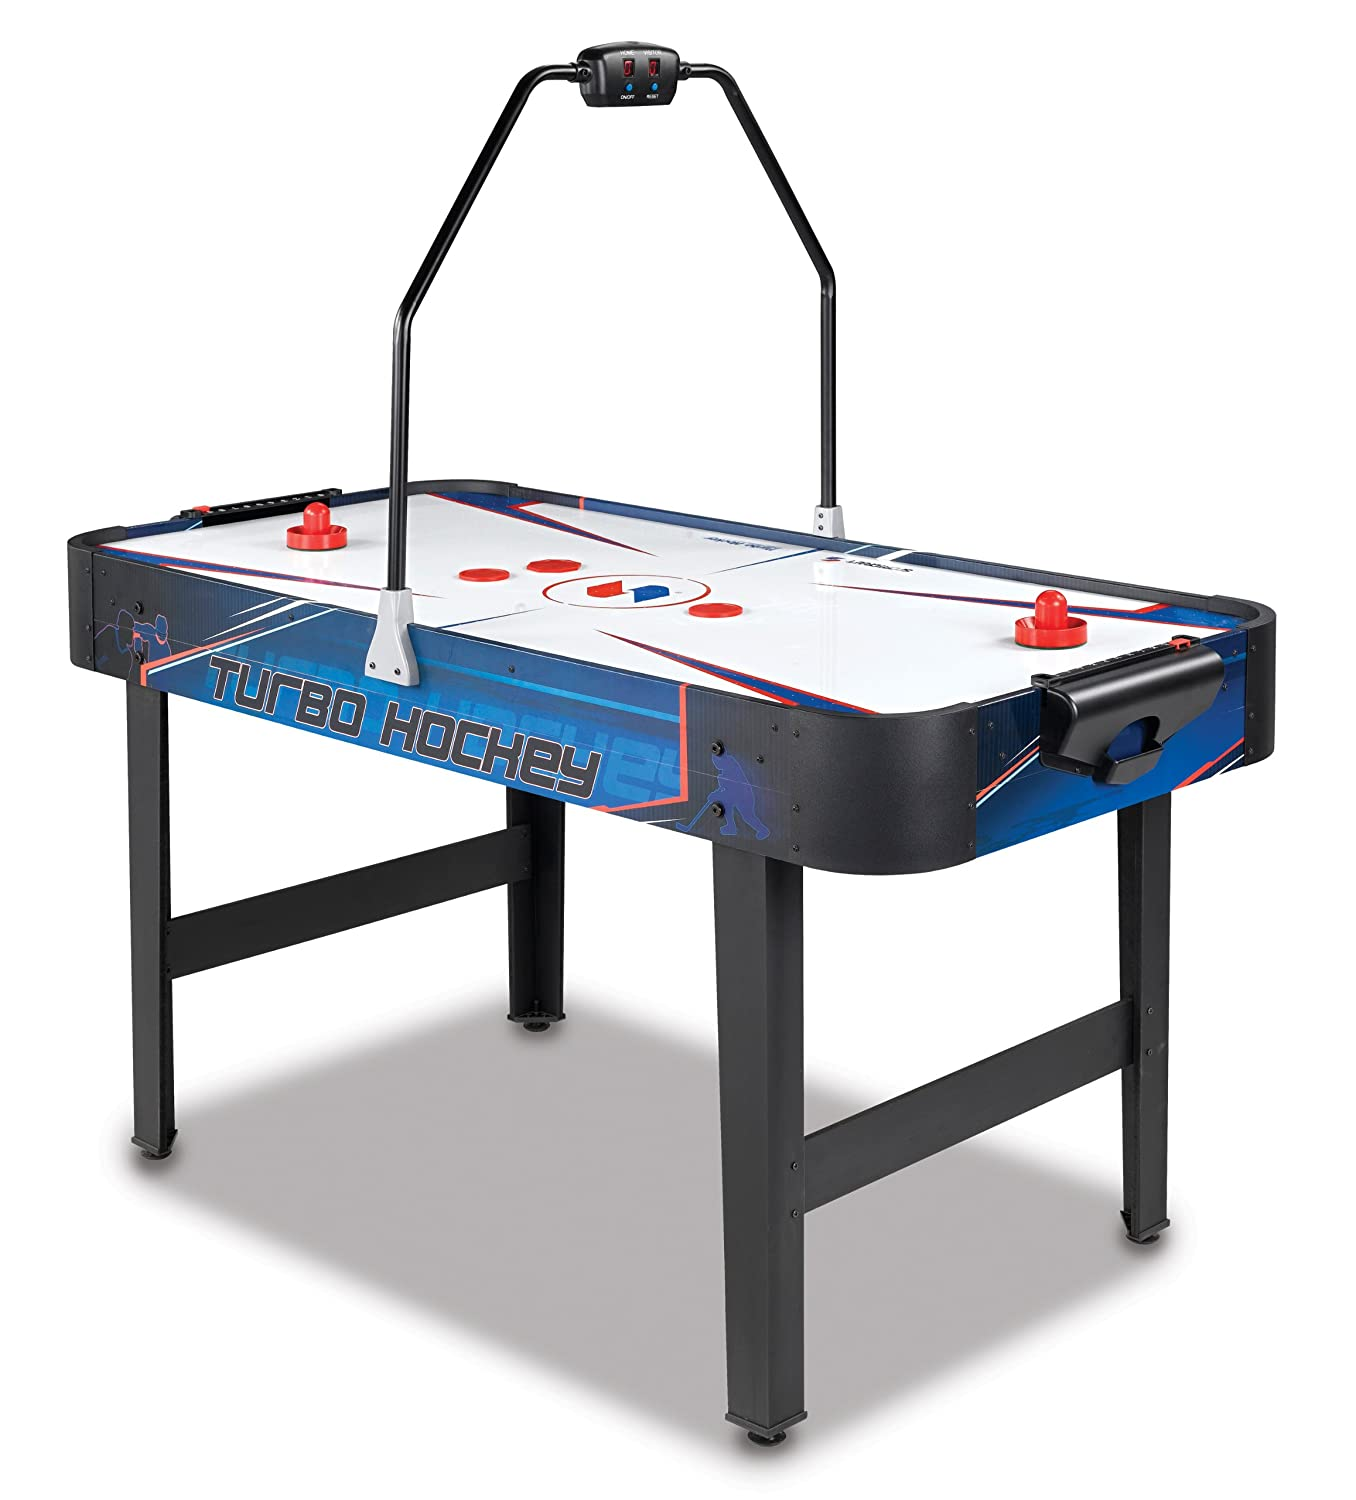 Beautiful Amazon.com : Sportcraft 54 Inch Forecheck Hockey Table : Sports U0026 Outdoors